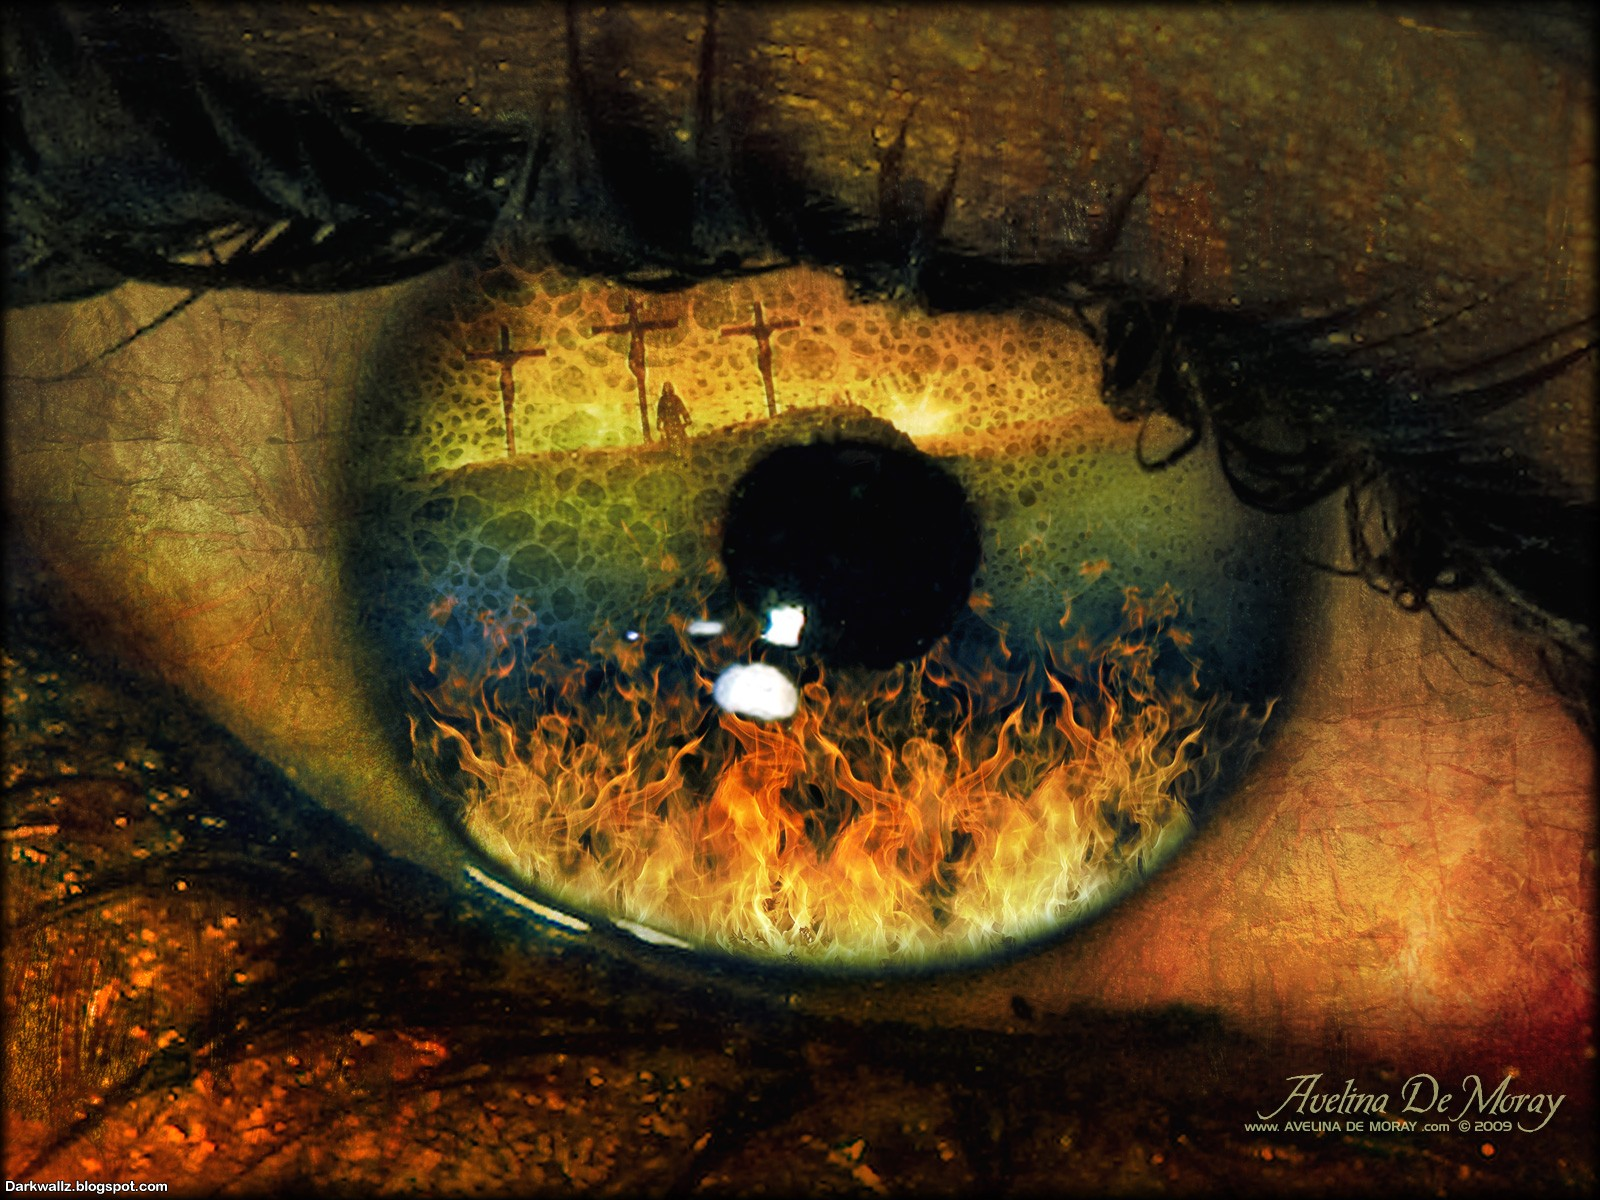 Eyes Wallpapers 37 Dark Wallpapers High Quality Black Gothic FREE 1600x1200